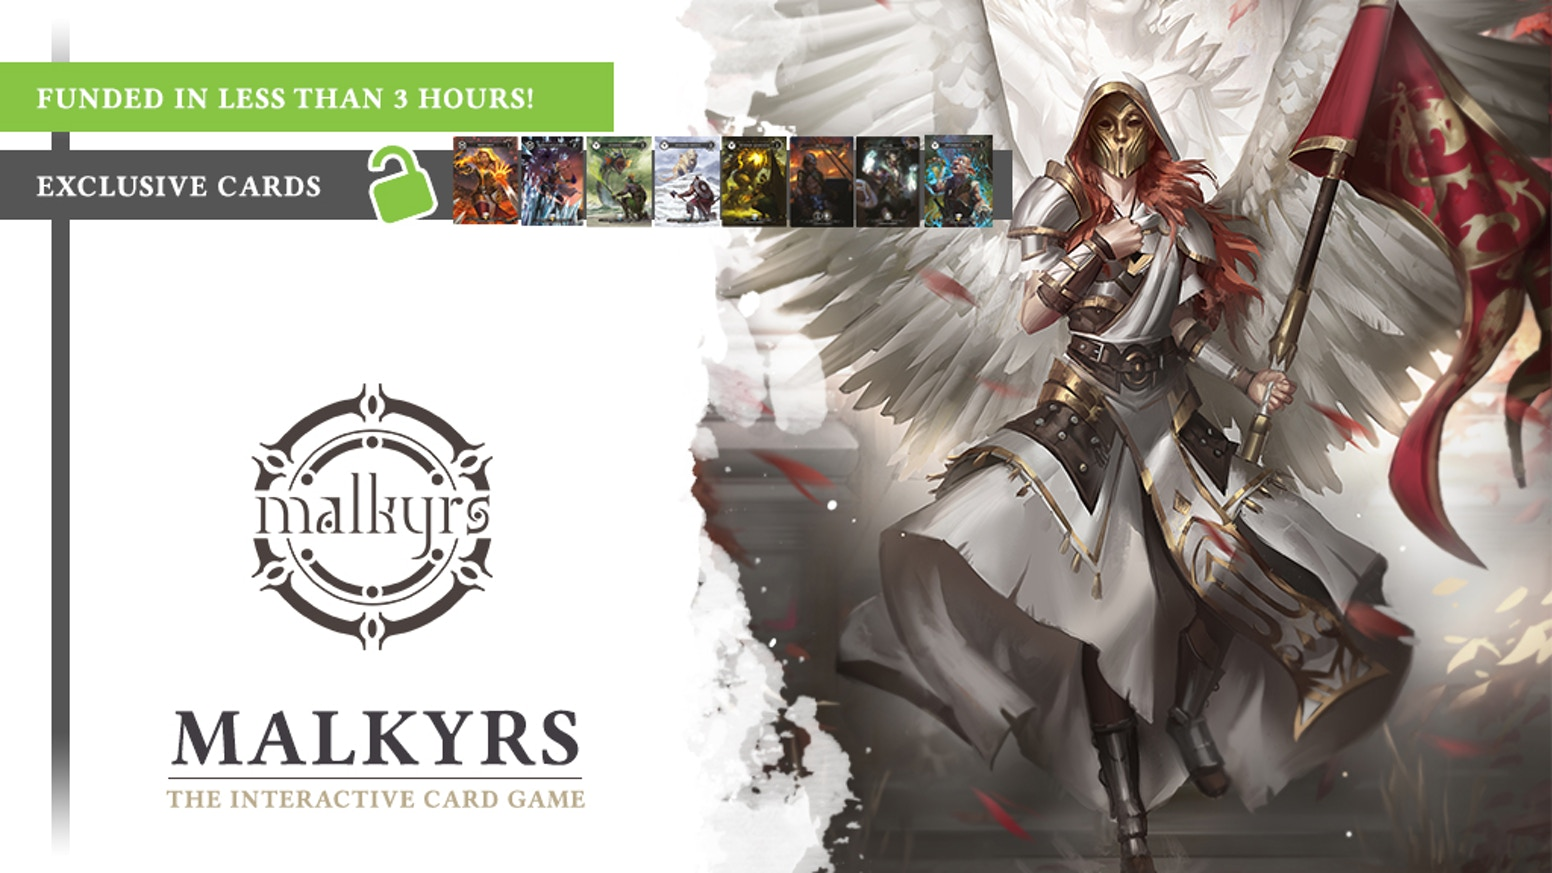 Malkyrs is an interactive trading card game. Fight your friends online with real cards & upgrade them on PC, MAC and NINTENDO SWITCH! If you missed the campaign you  can access to late pledge here: